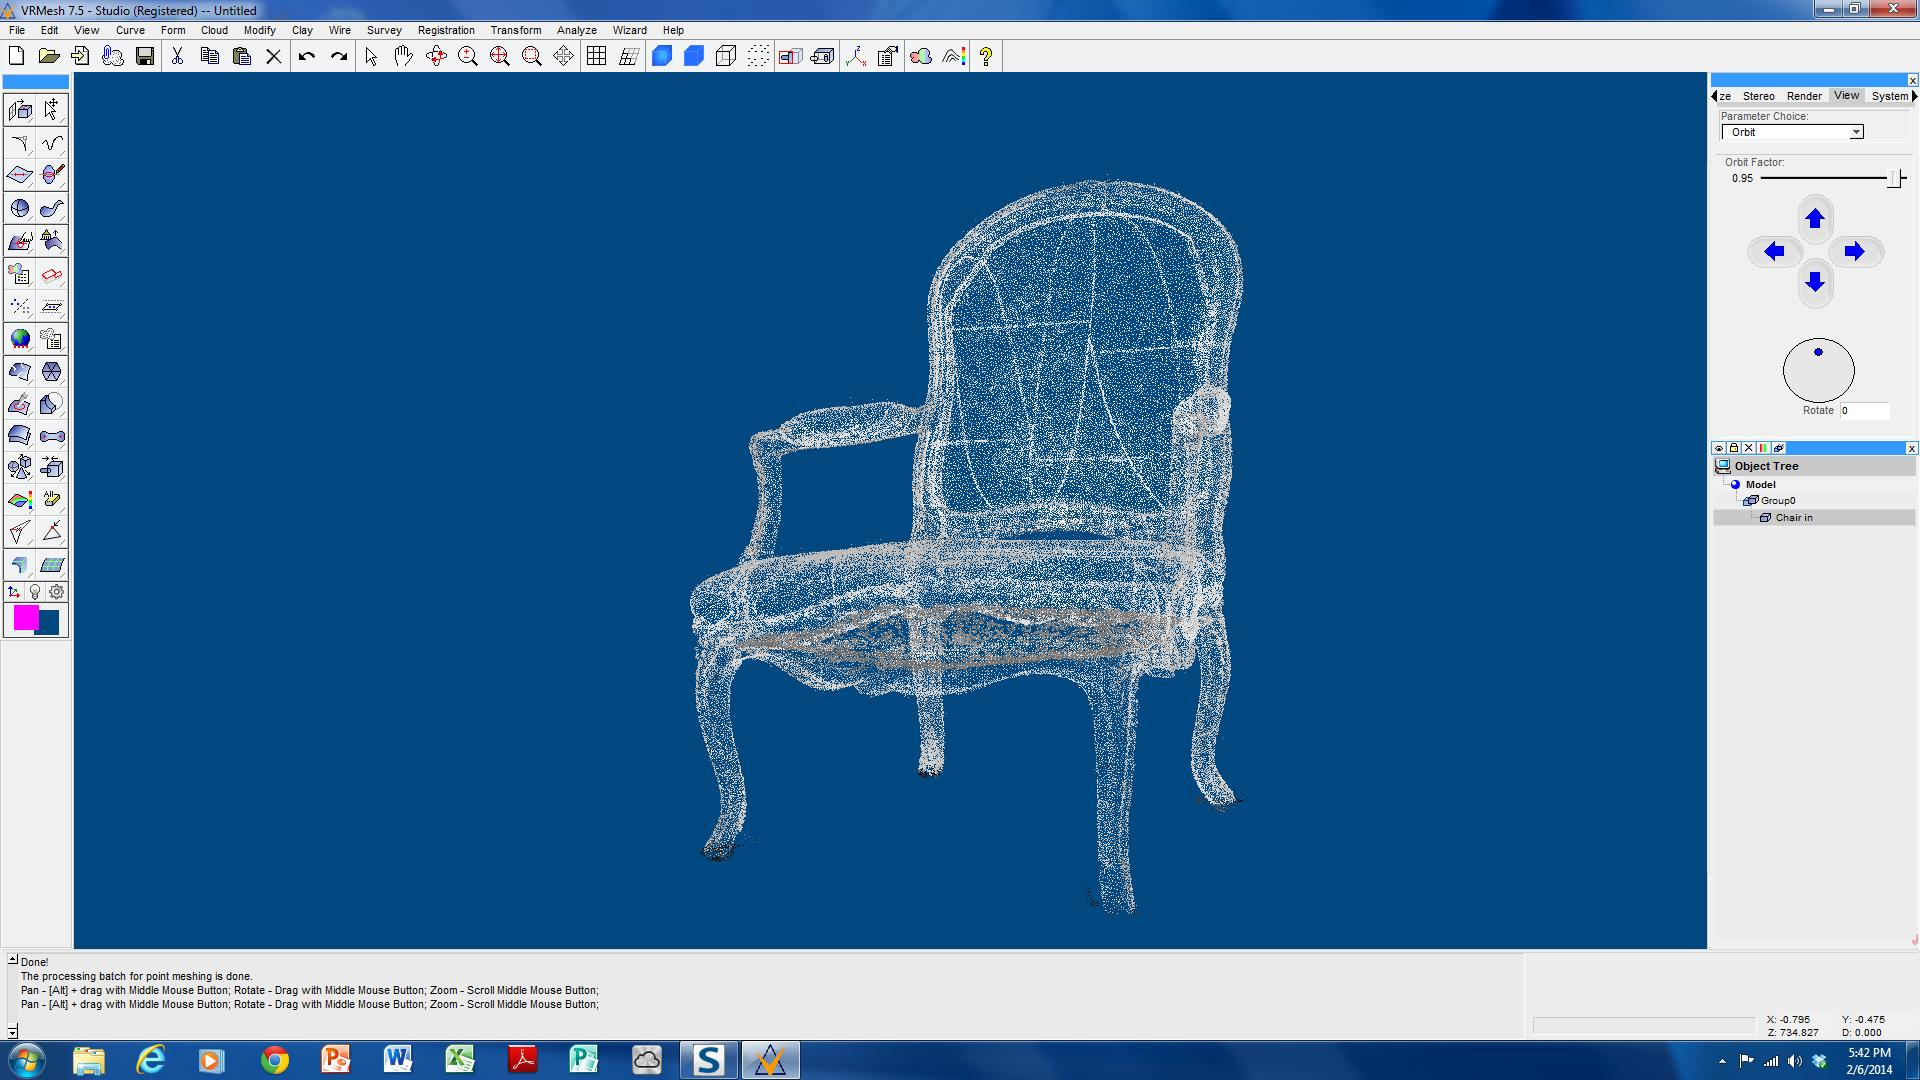 Historically significant objects can be scanned, analyzed and modeled allowing for reverse engineering and preservation.